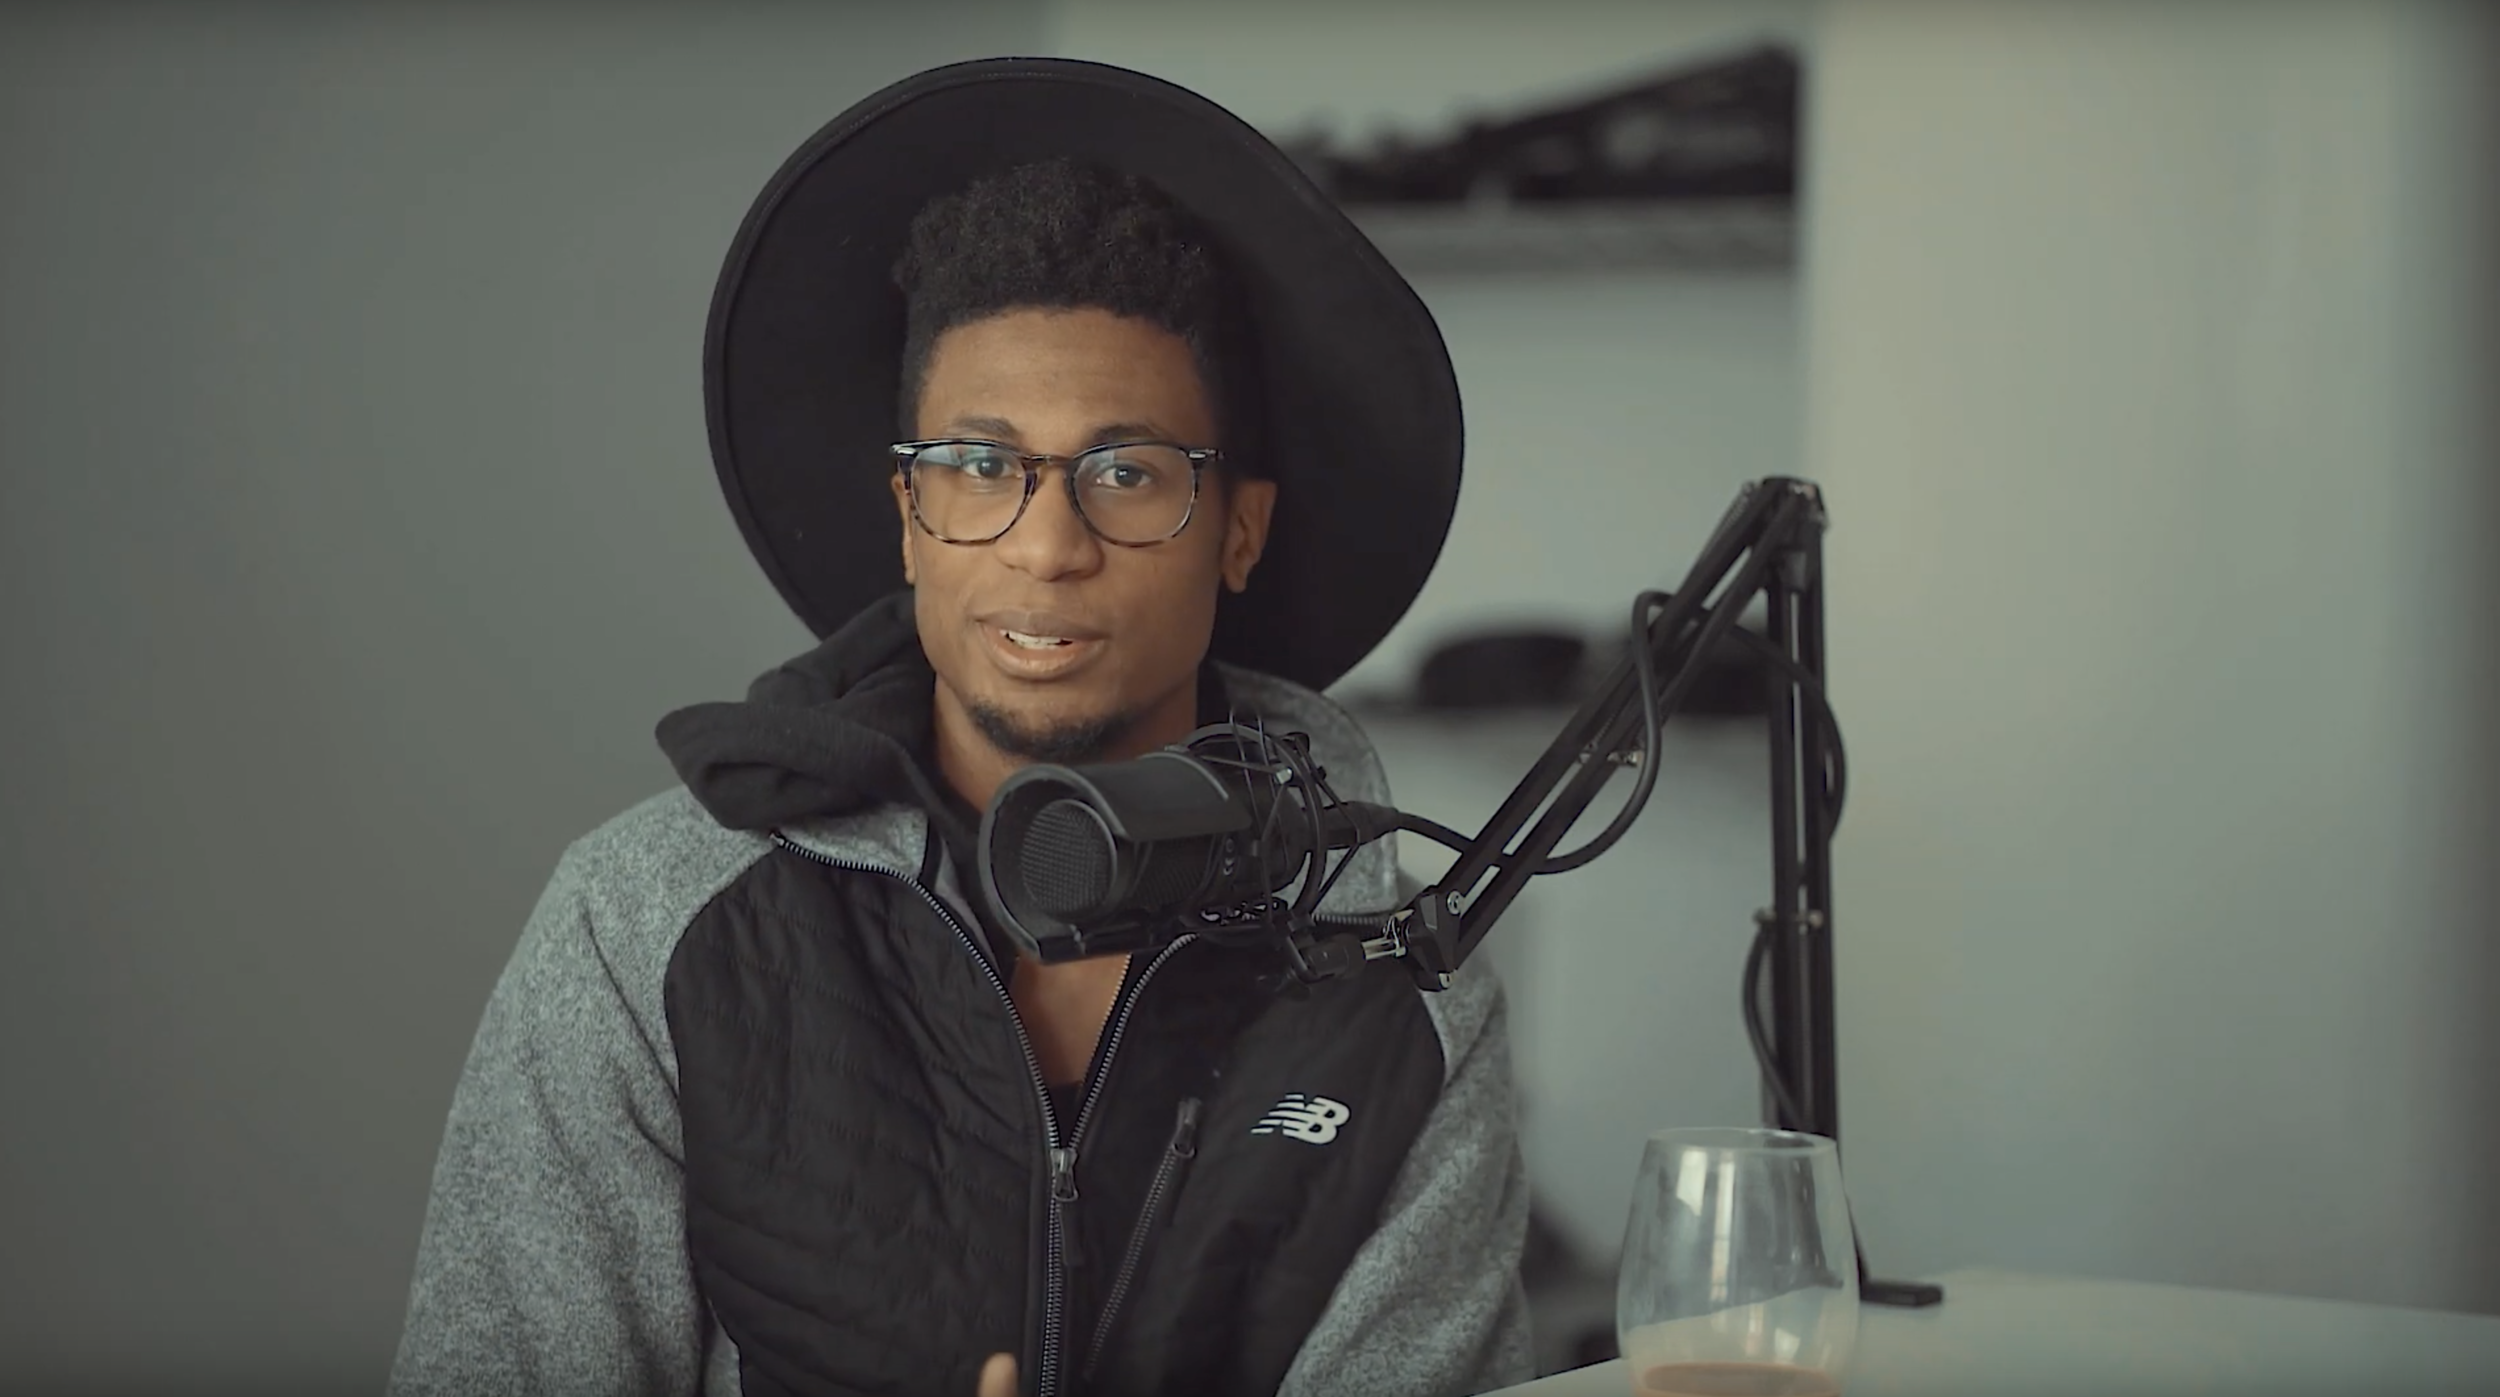 The Partial Quentin Allums Story - Hey! I'm just Q. CEO of Urban Misfit Ventures and one of the hosts of this podcast.